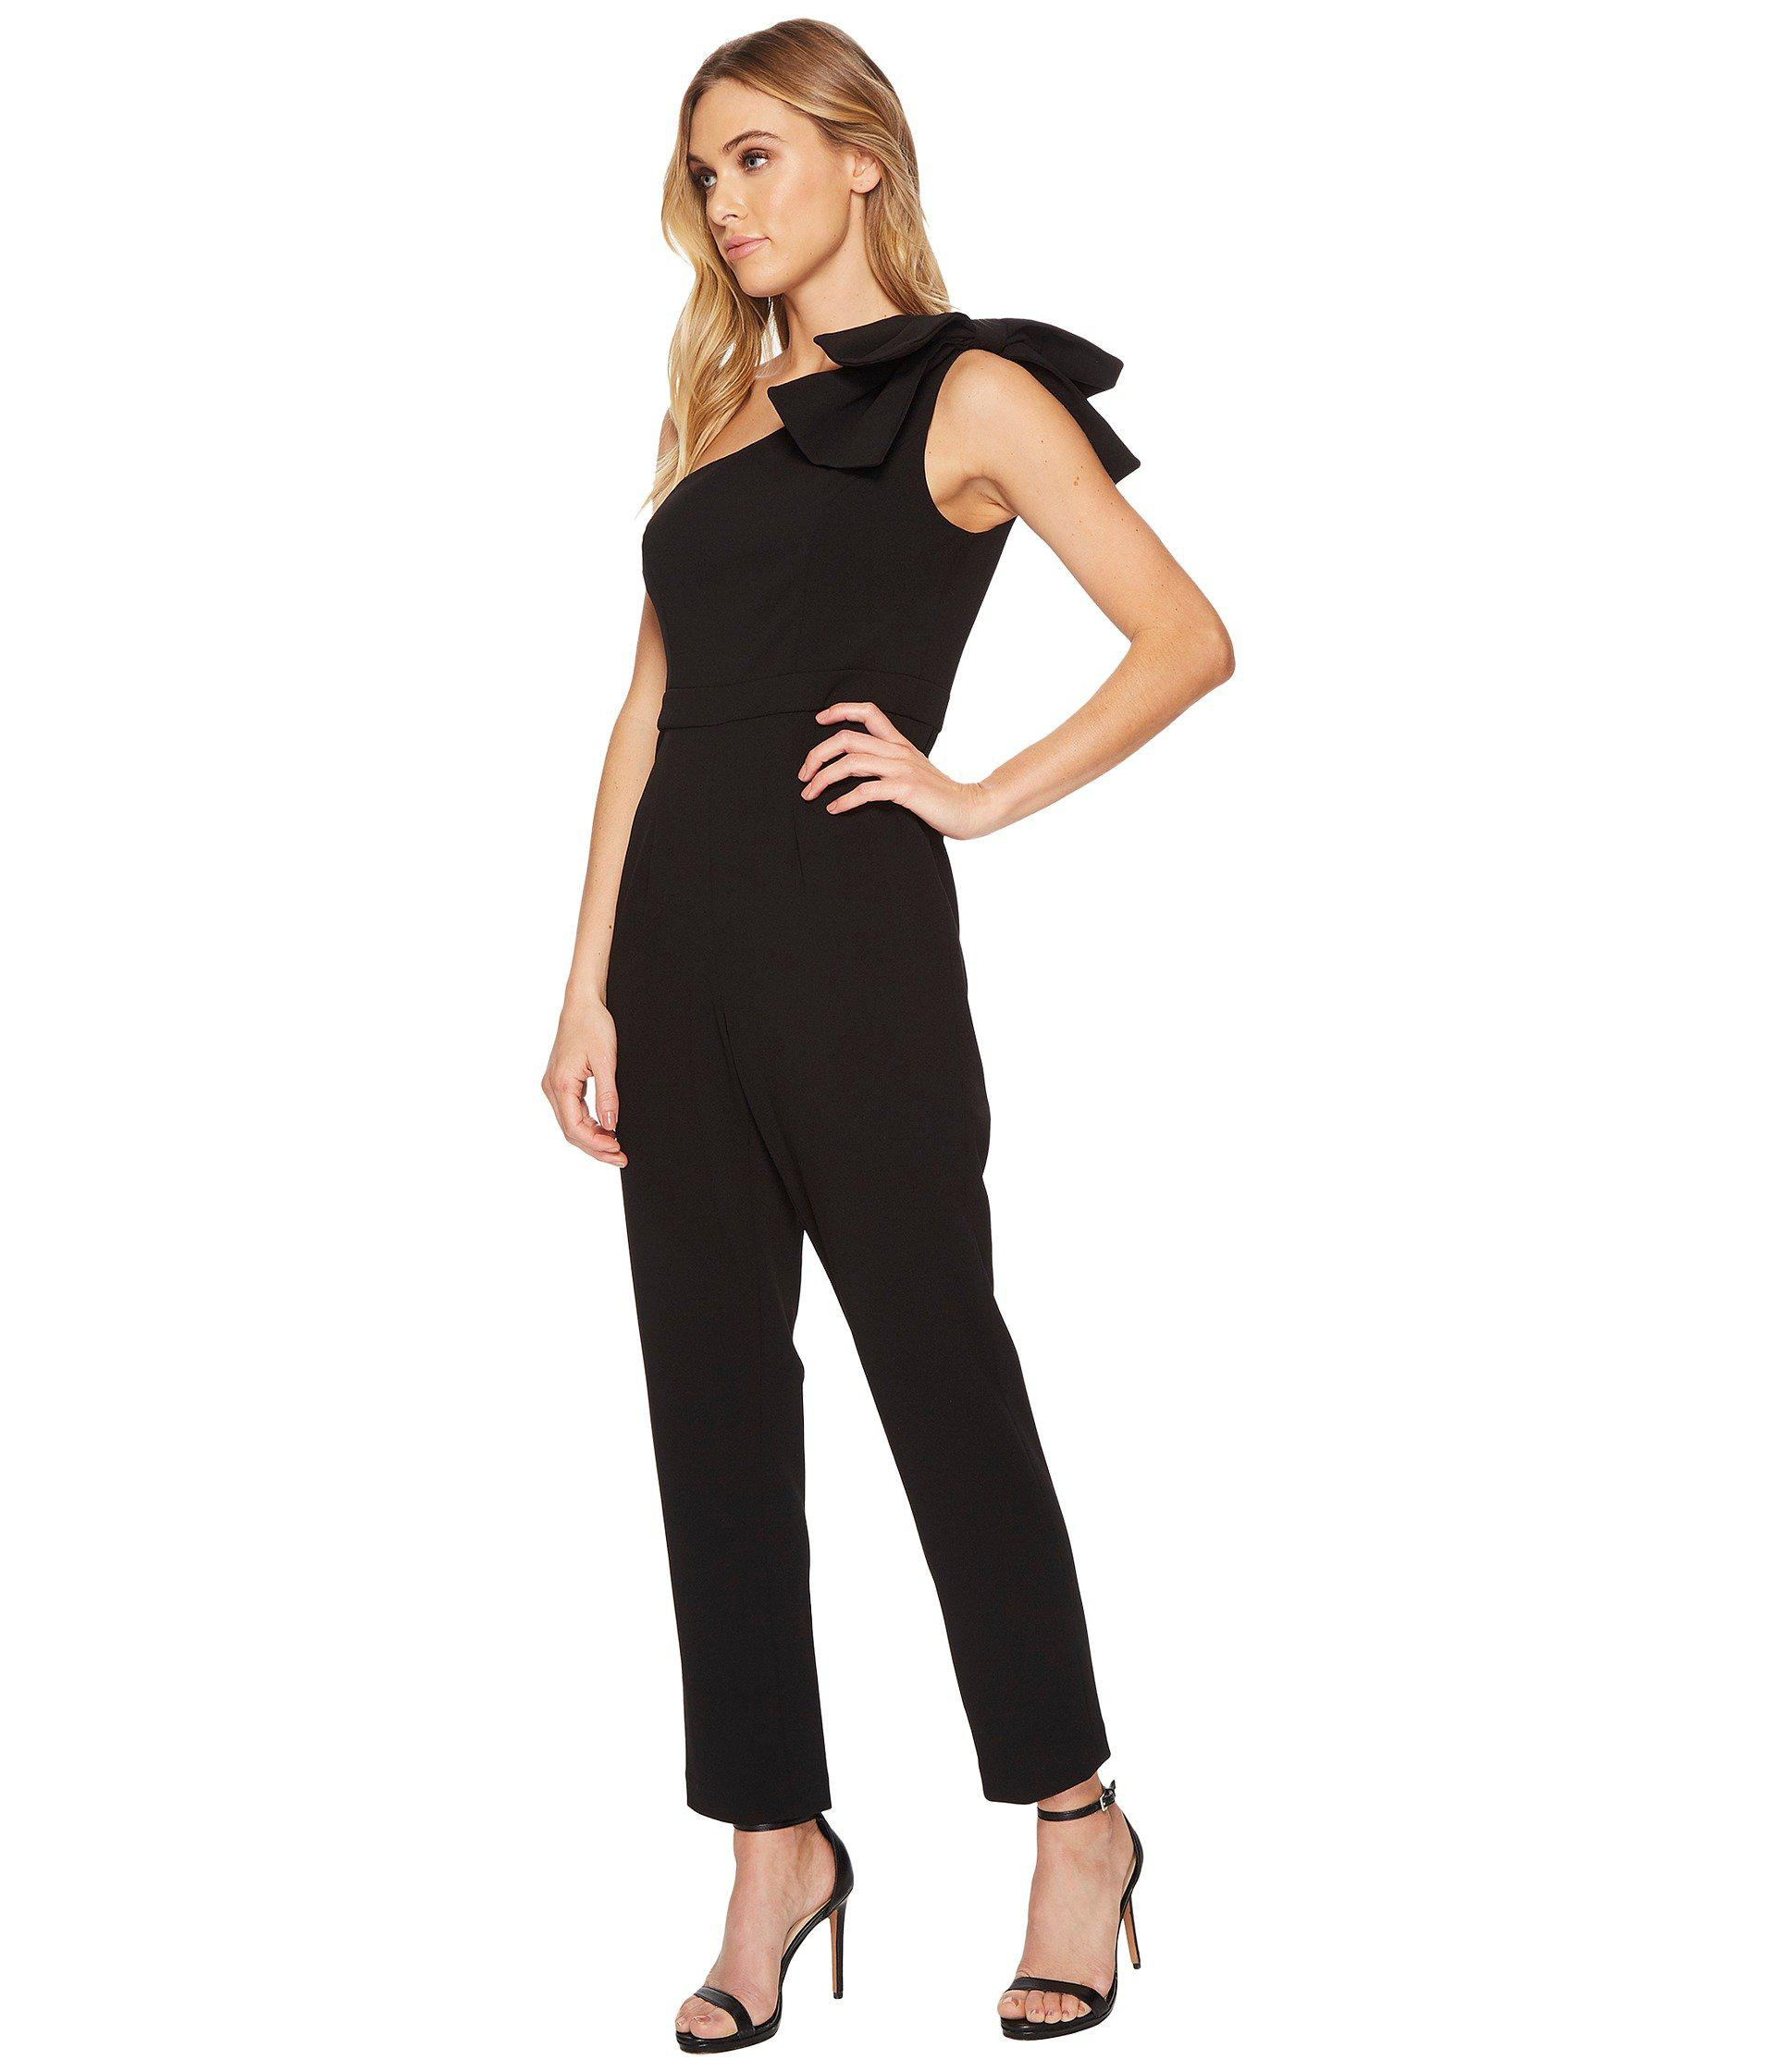 ebf2ae67a25 Lyst - Adrianna Papell One Shoulder Jumpsuit With Bow Detail in Black